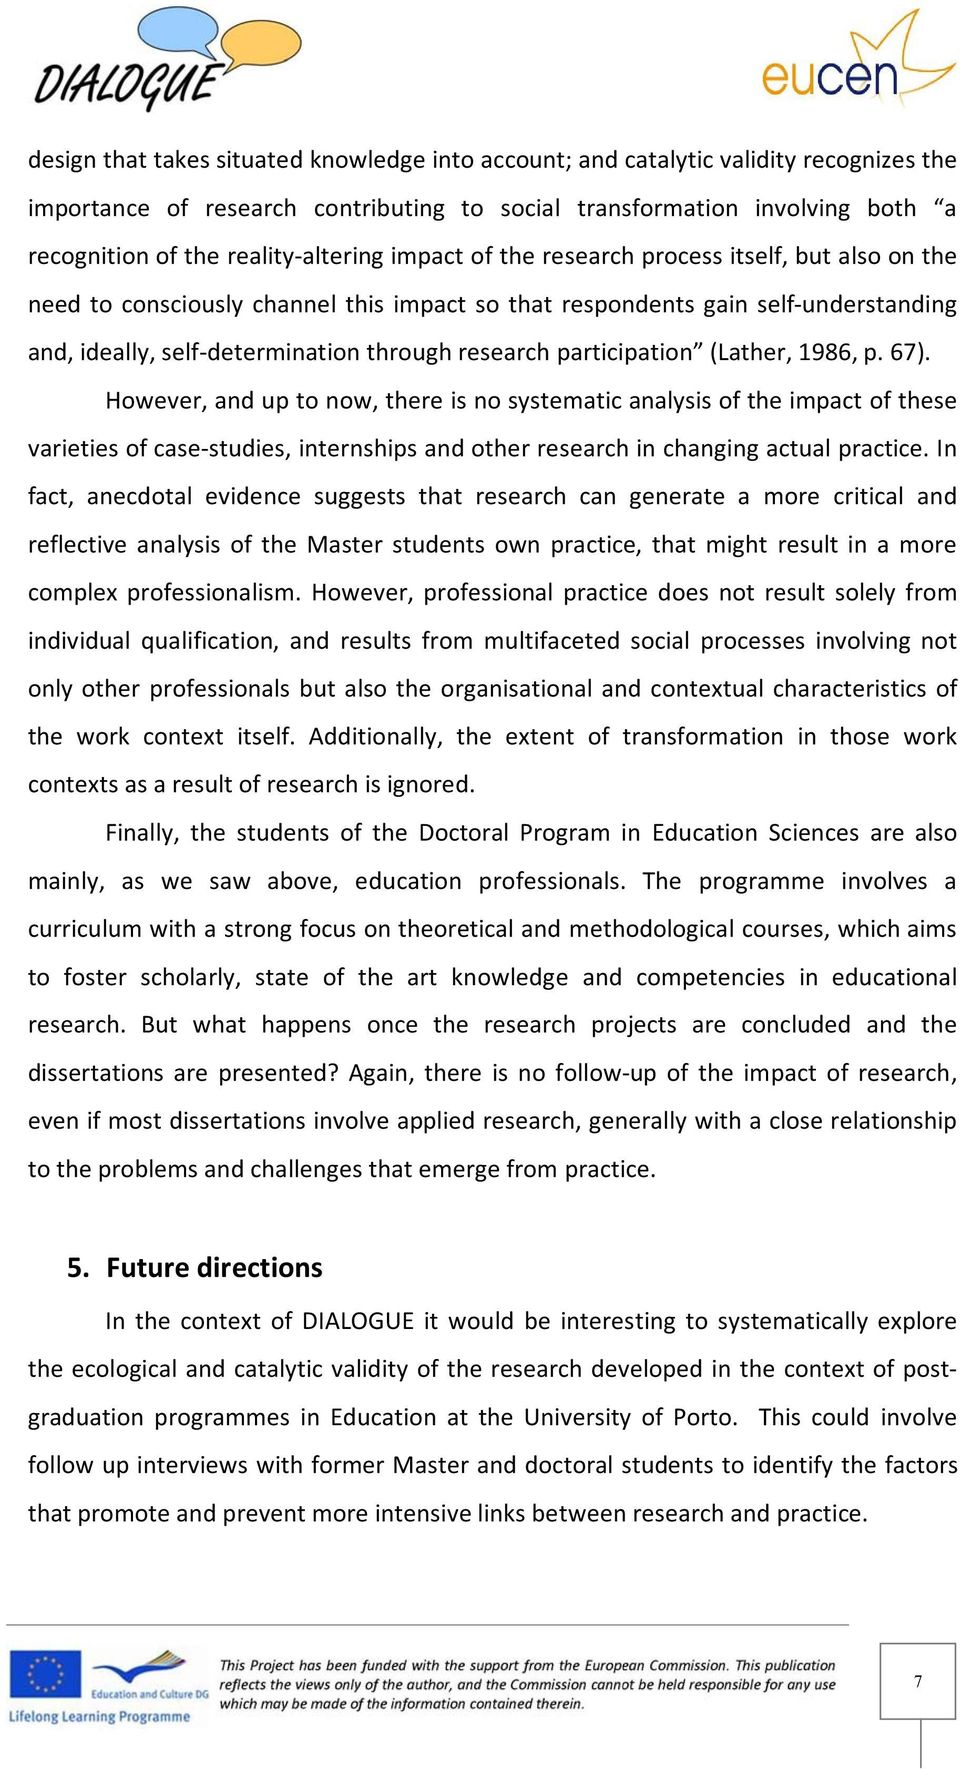 research participation (Lather, 1986, p. 67).